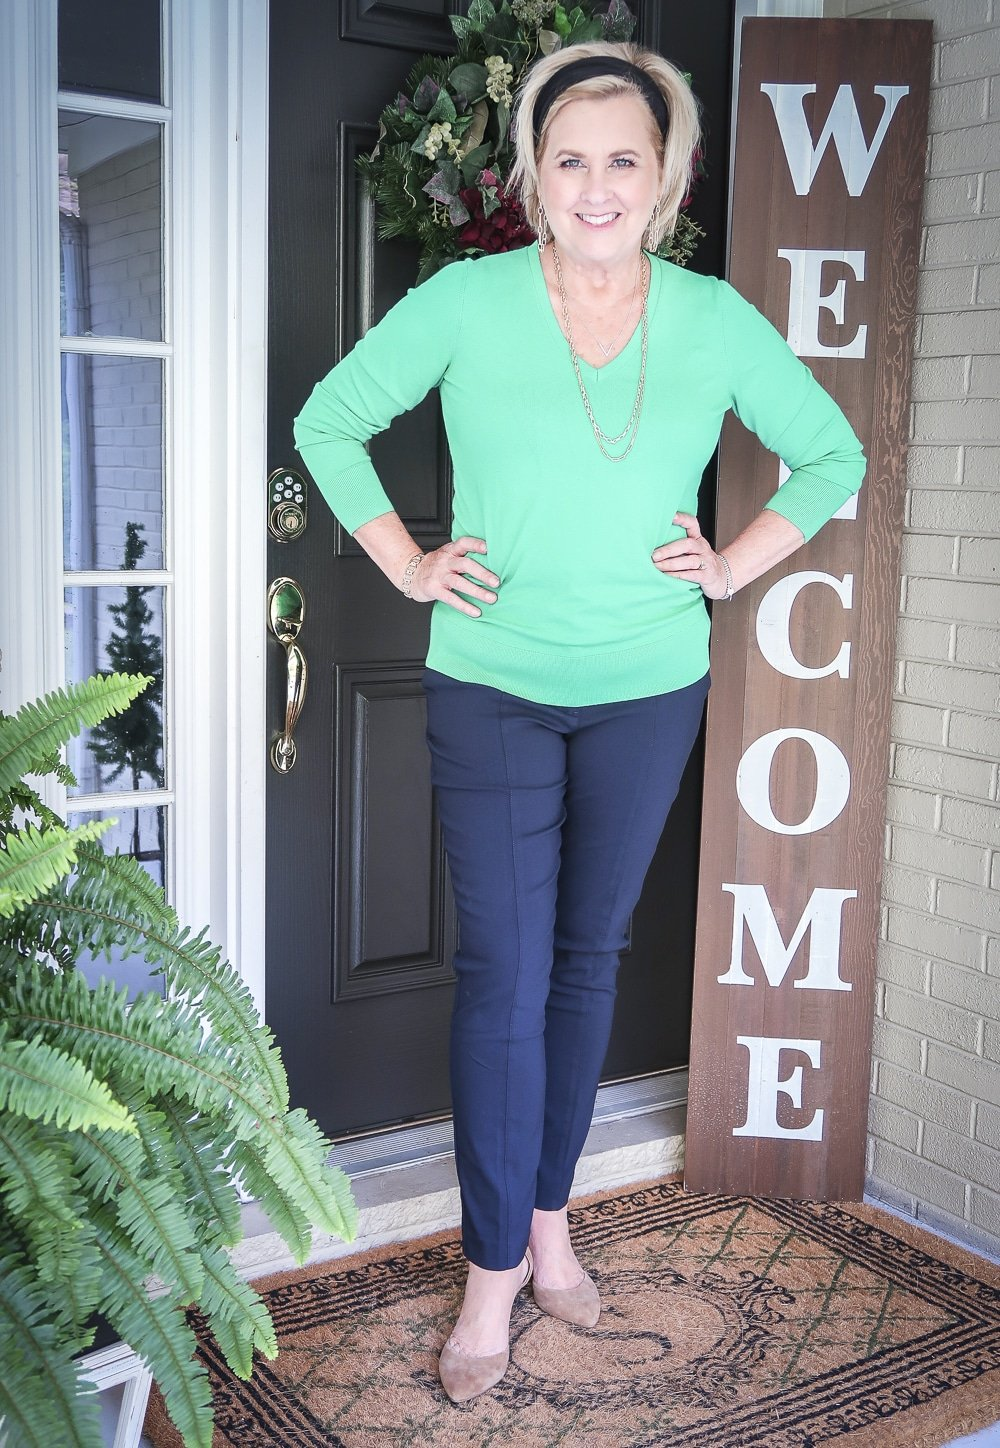 Fashion Blogger 50 Is Not Old is wearing a vibrant green v-neck sweater and navy pants